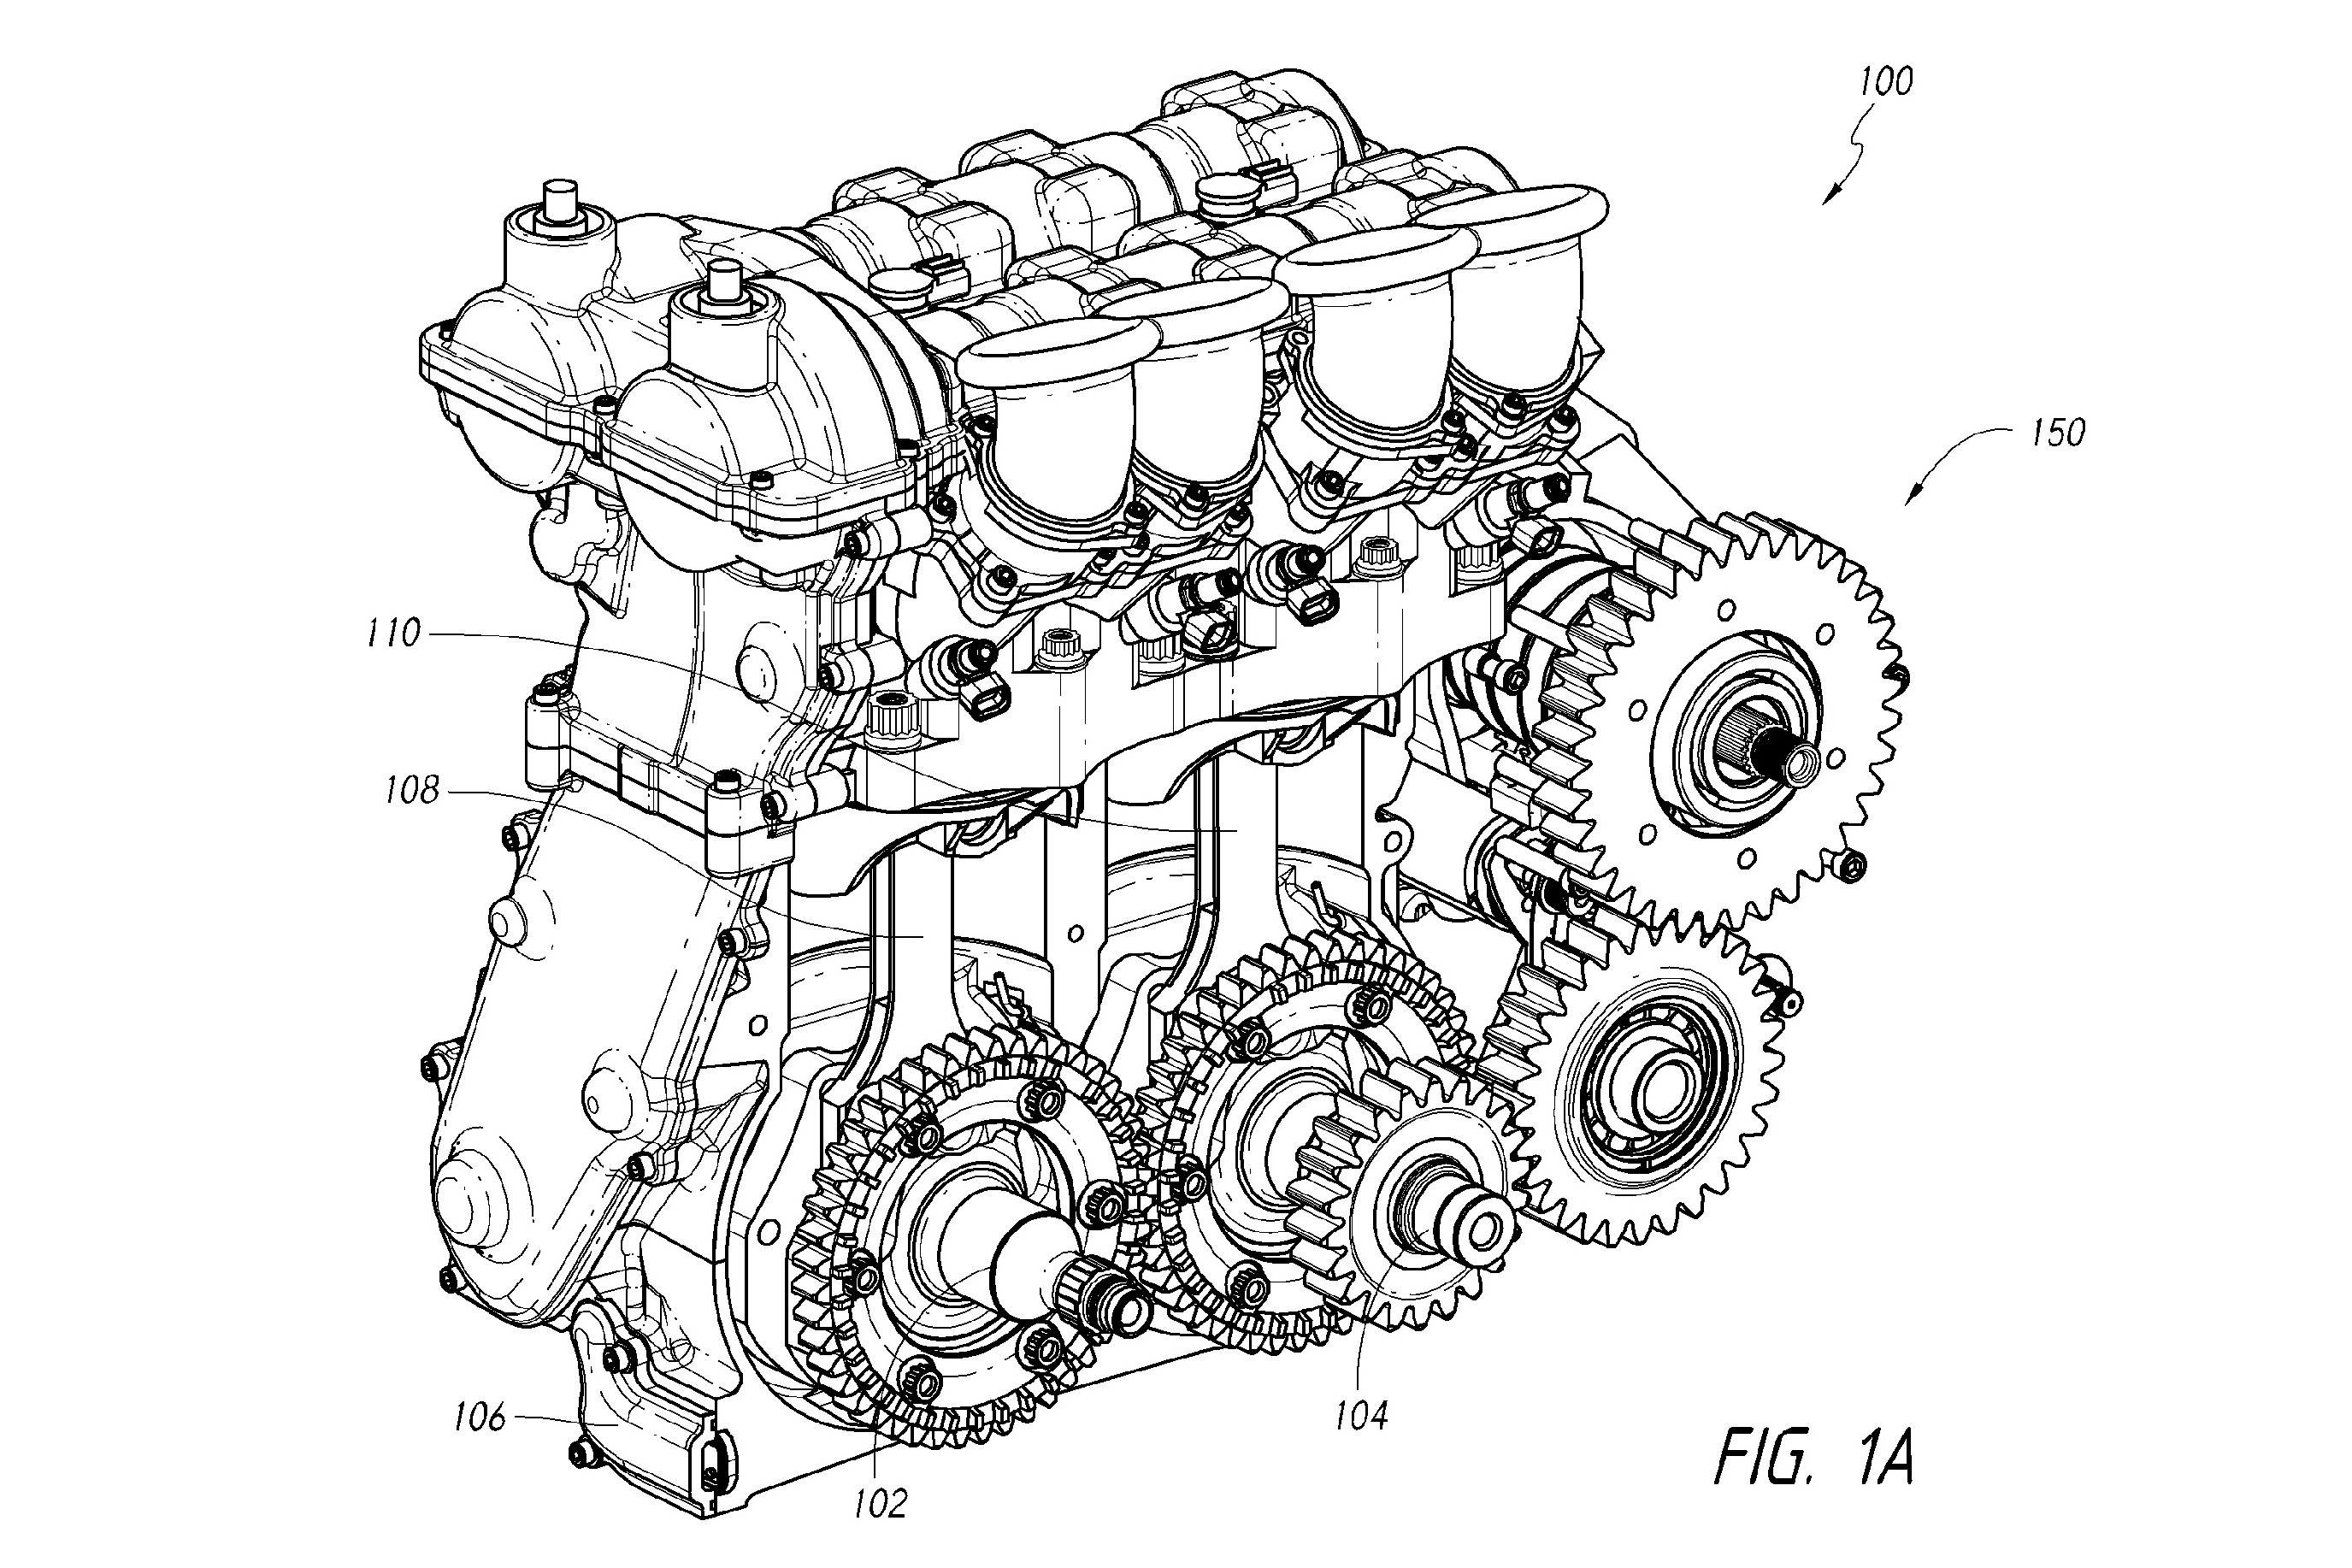 Nascar Sb2 Racing Engines Images